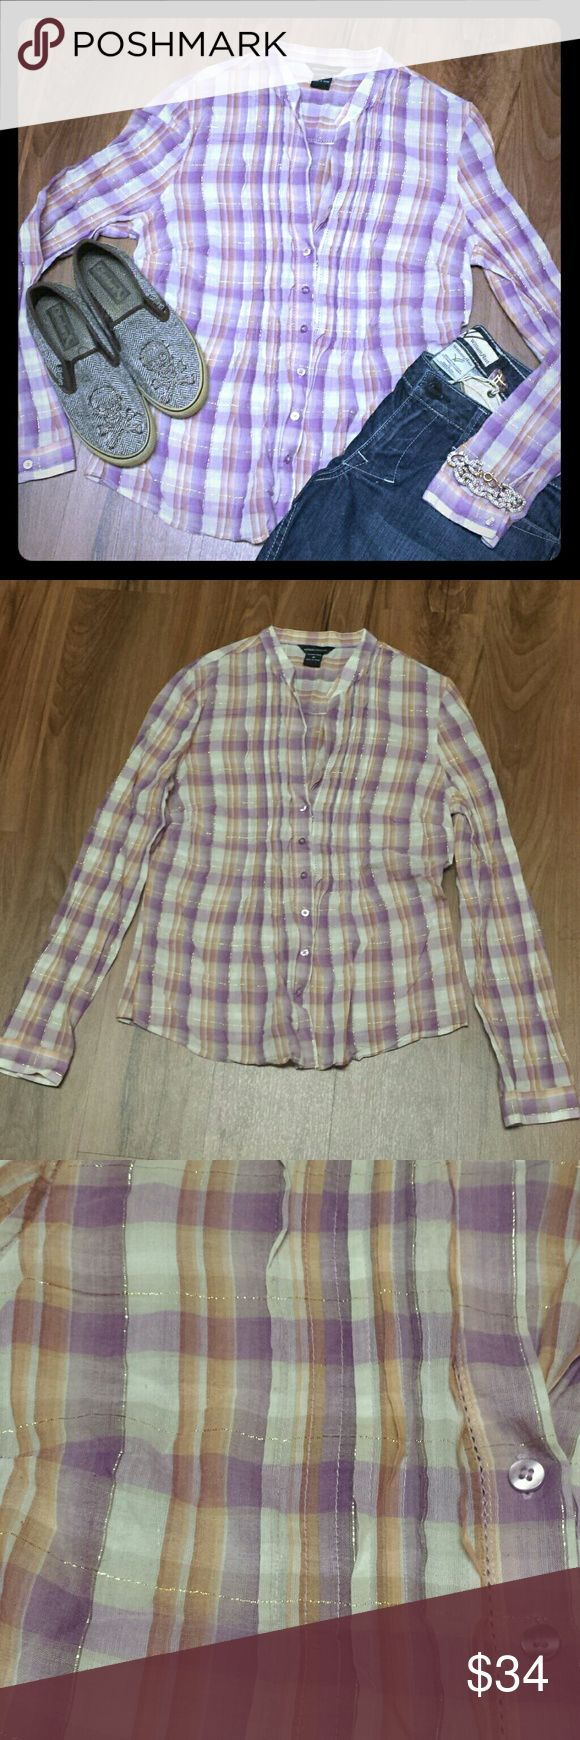 Victoria Secret Moda plaid glitter linen boho top Absolutely gorgeous Moda International Victoria's Secret light weight (think linen) button down in ivory, purple, and orange plaid with gold glitter, cut outs, and pleating in size medium. Very good pre-owned condition; I wish it still fit.  Top only. See separate listing(s) for other item(s). Victoria's Secret Tops Button Down Shirts